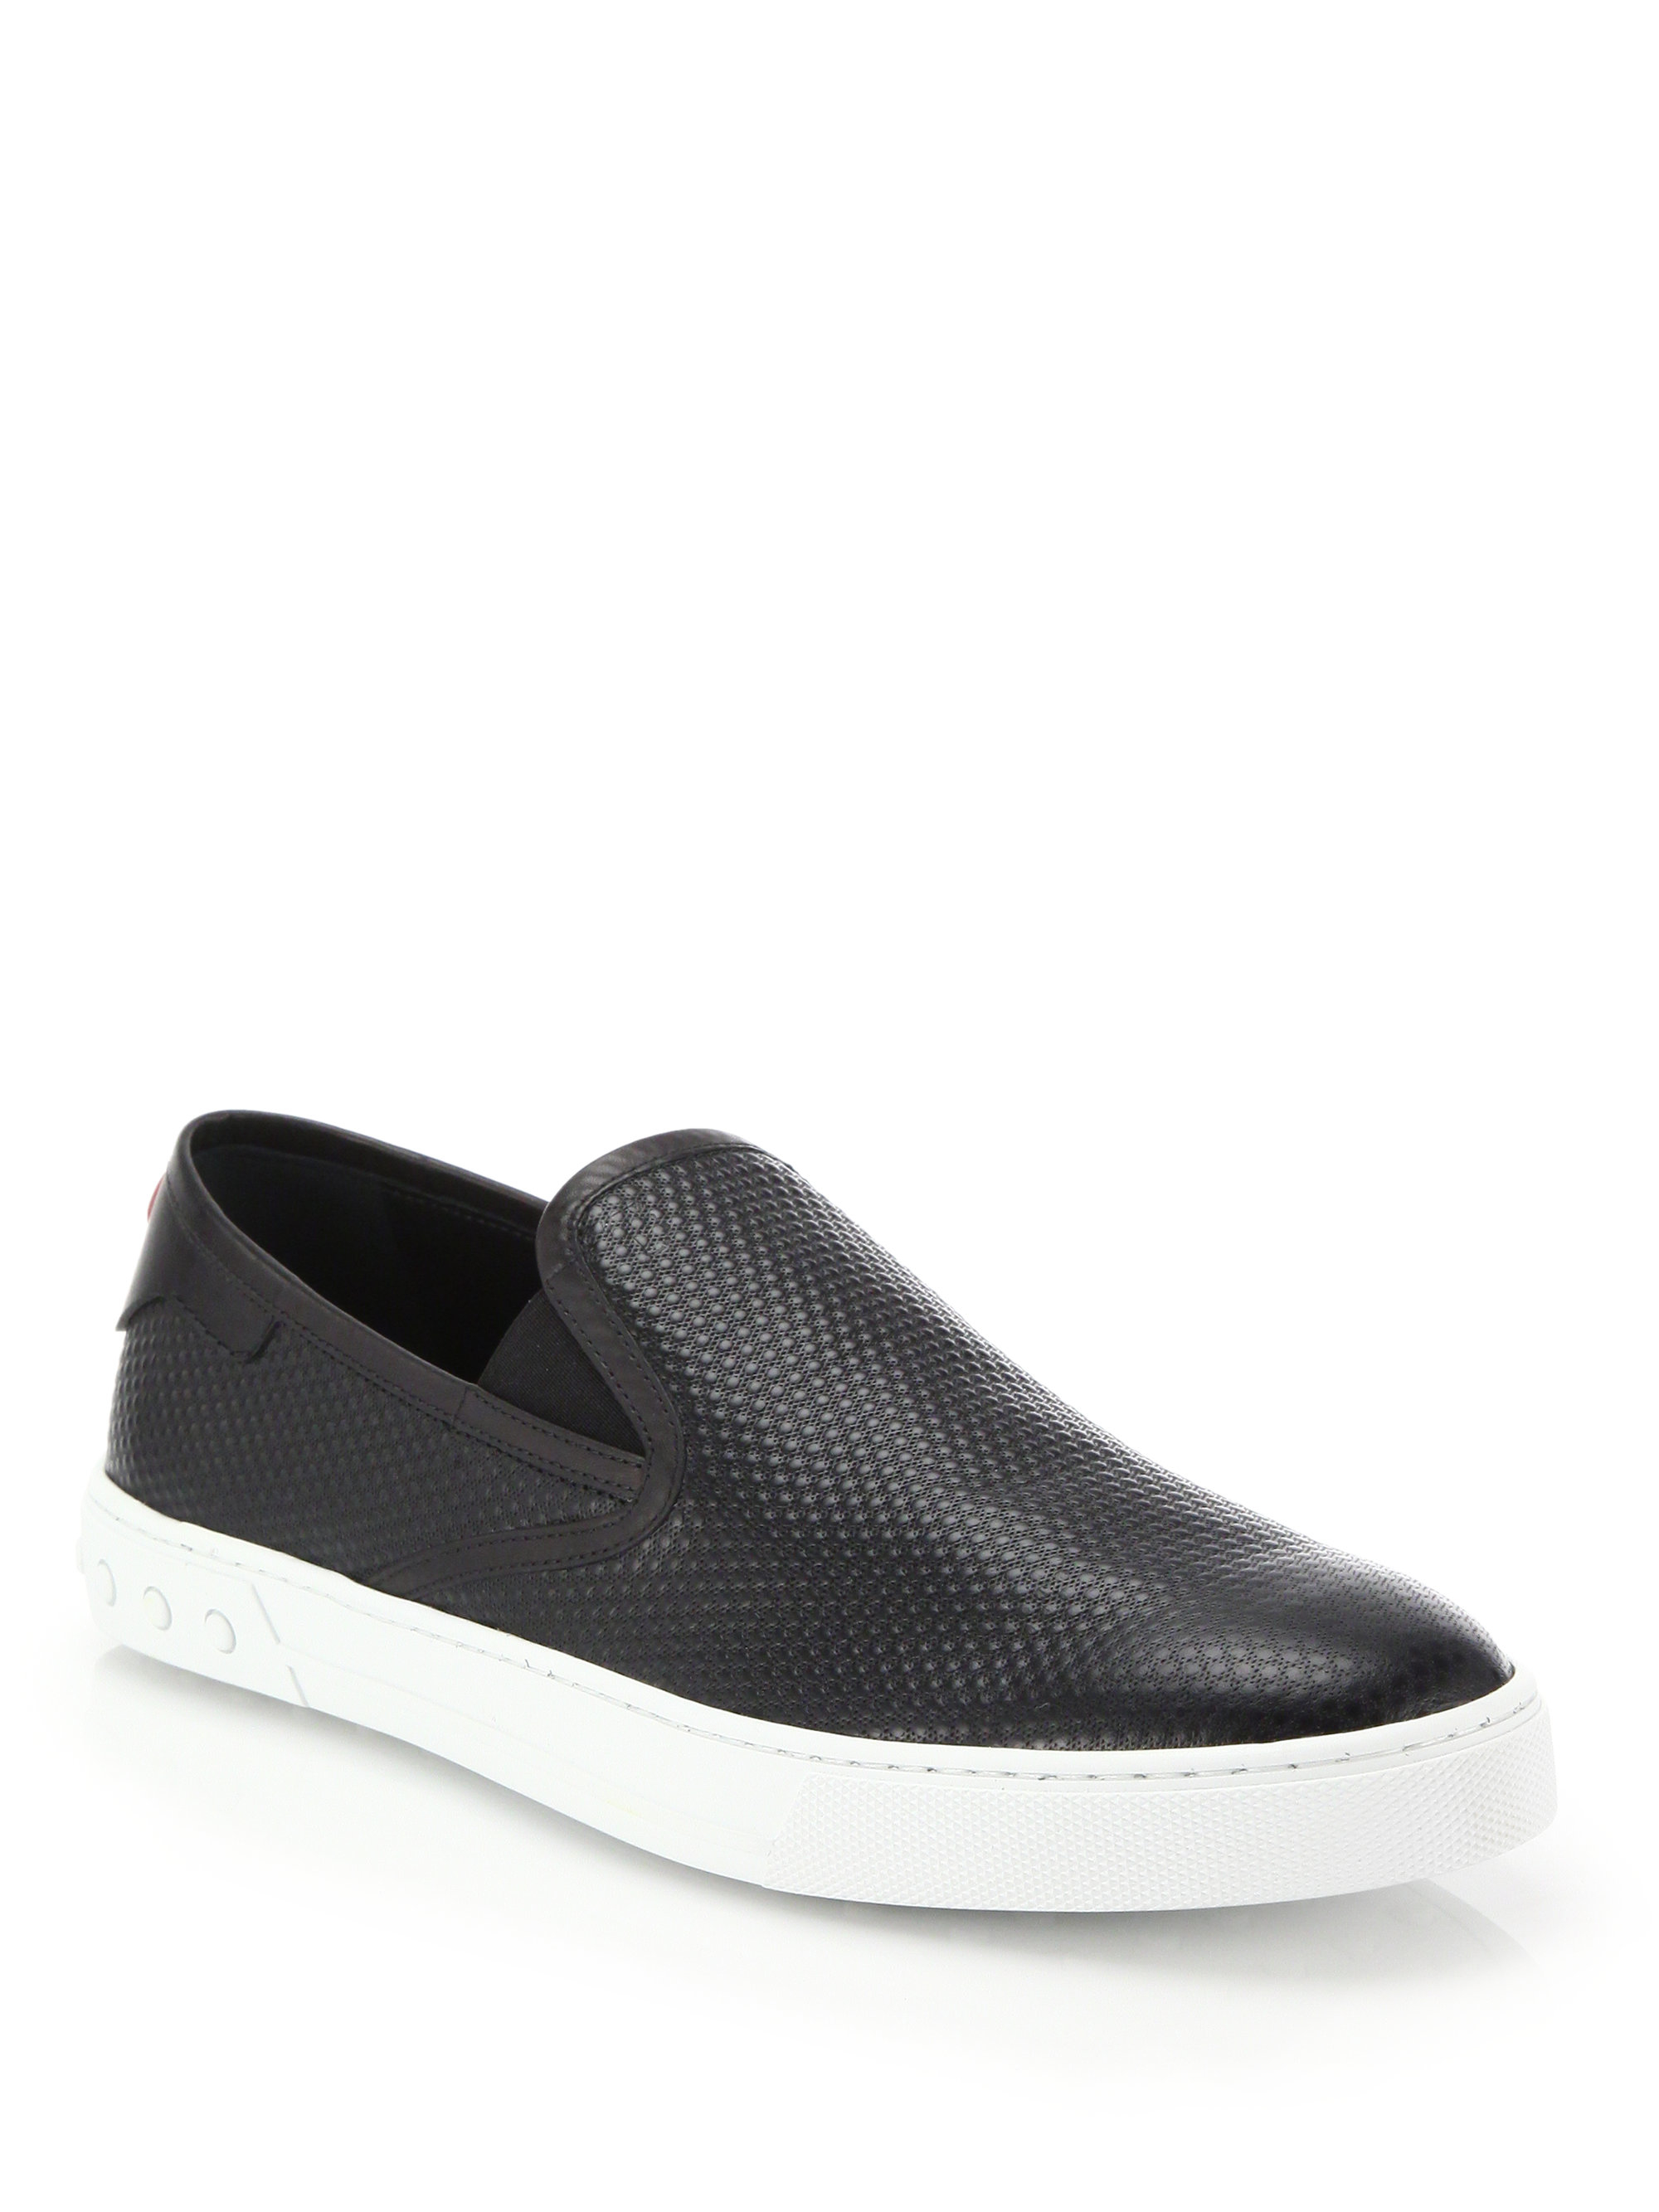 Slip-ons in Leather Tod's Clearance Cheap Buy Cheap Extremely Sale For Sale Sale Newest 18PDzDA